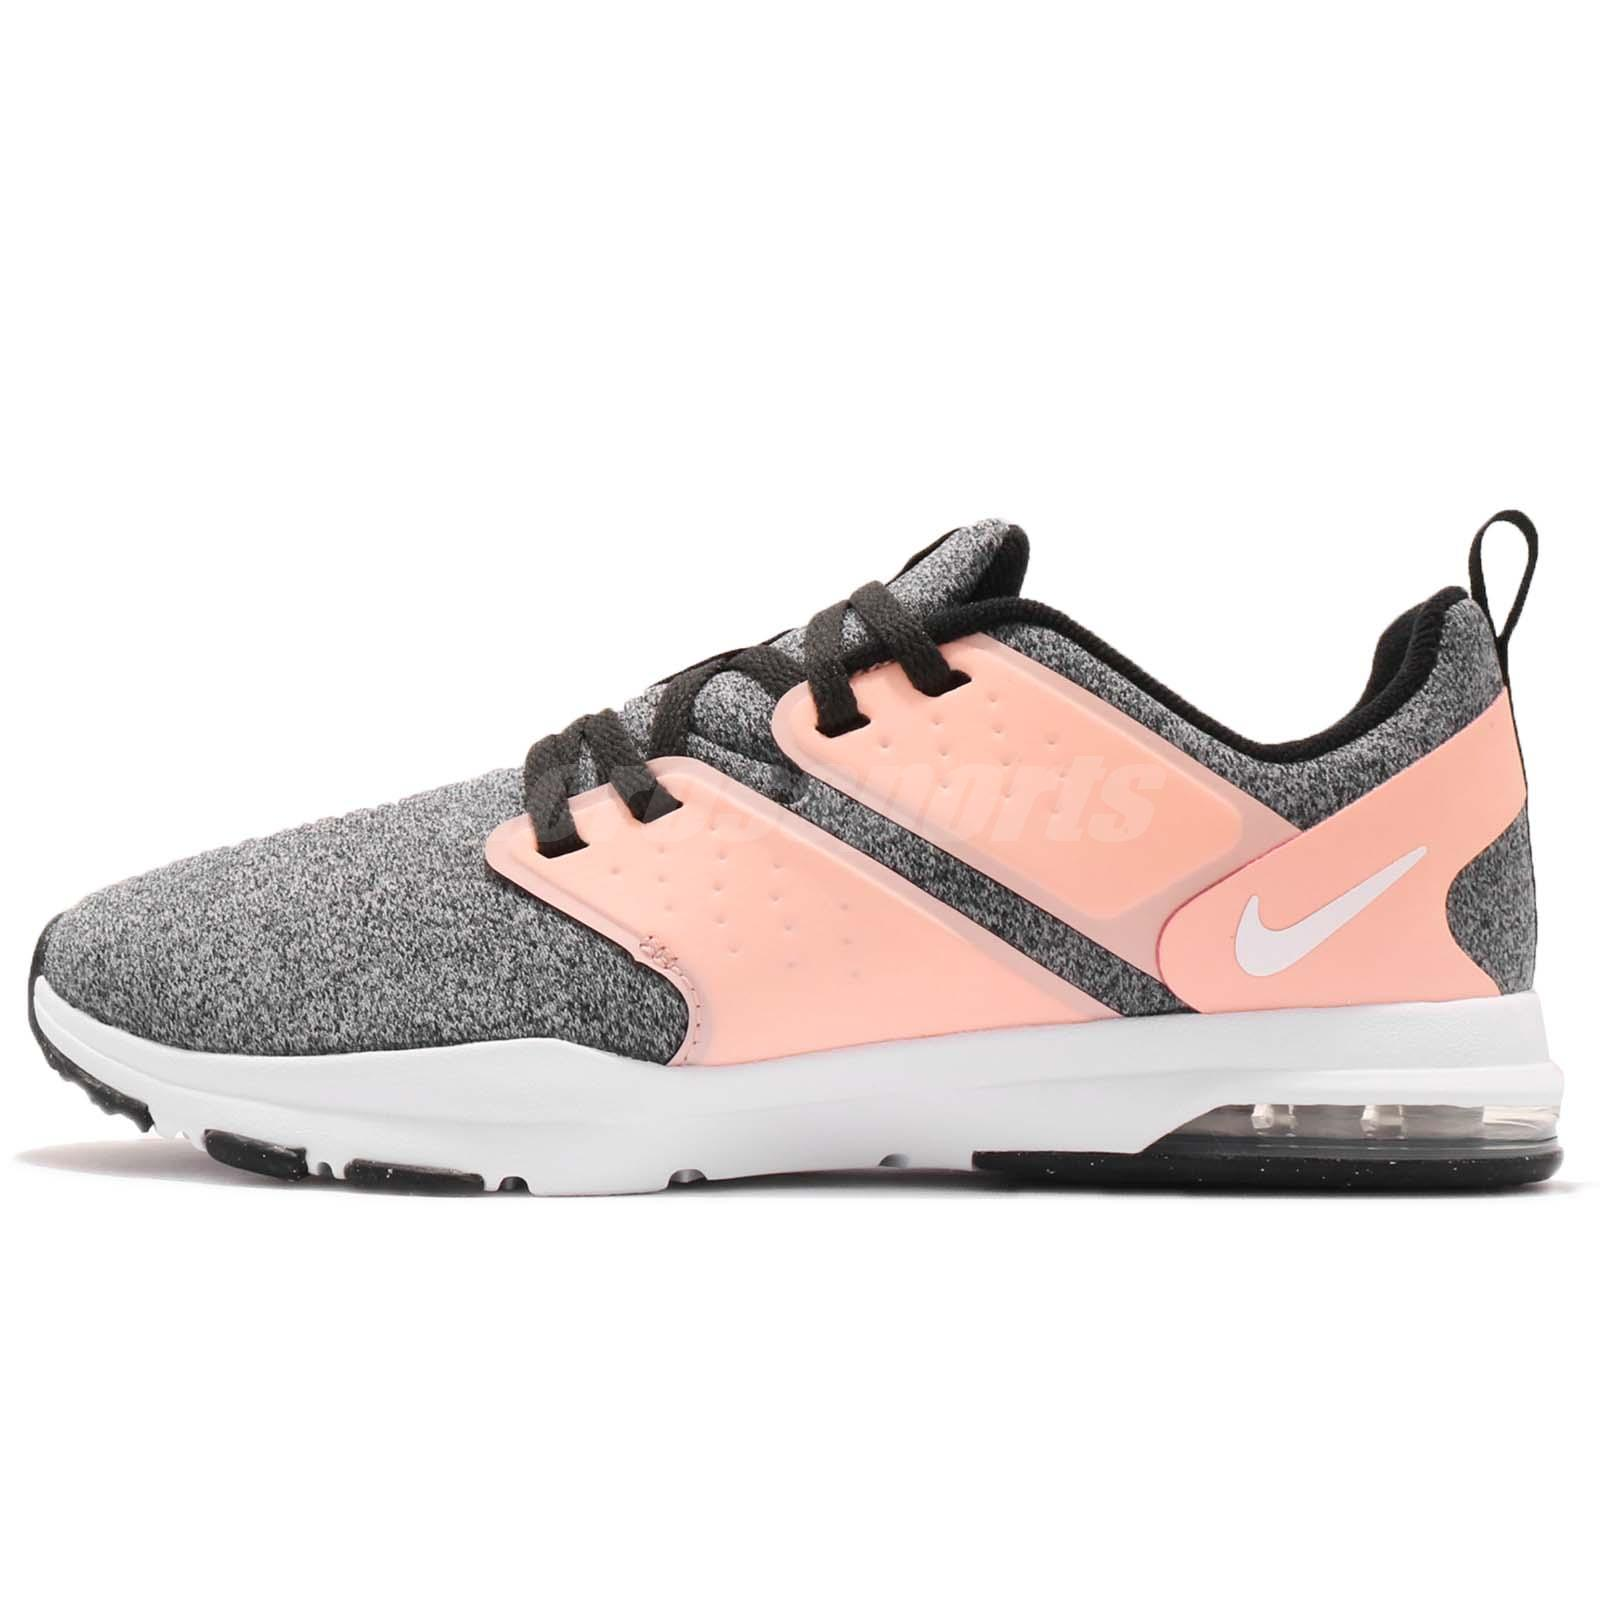 357861bb82 Nike Wmns Air Bella TR Pink Grey White Women Cross Training Shoes 924338-006